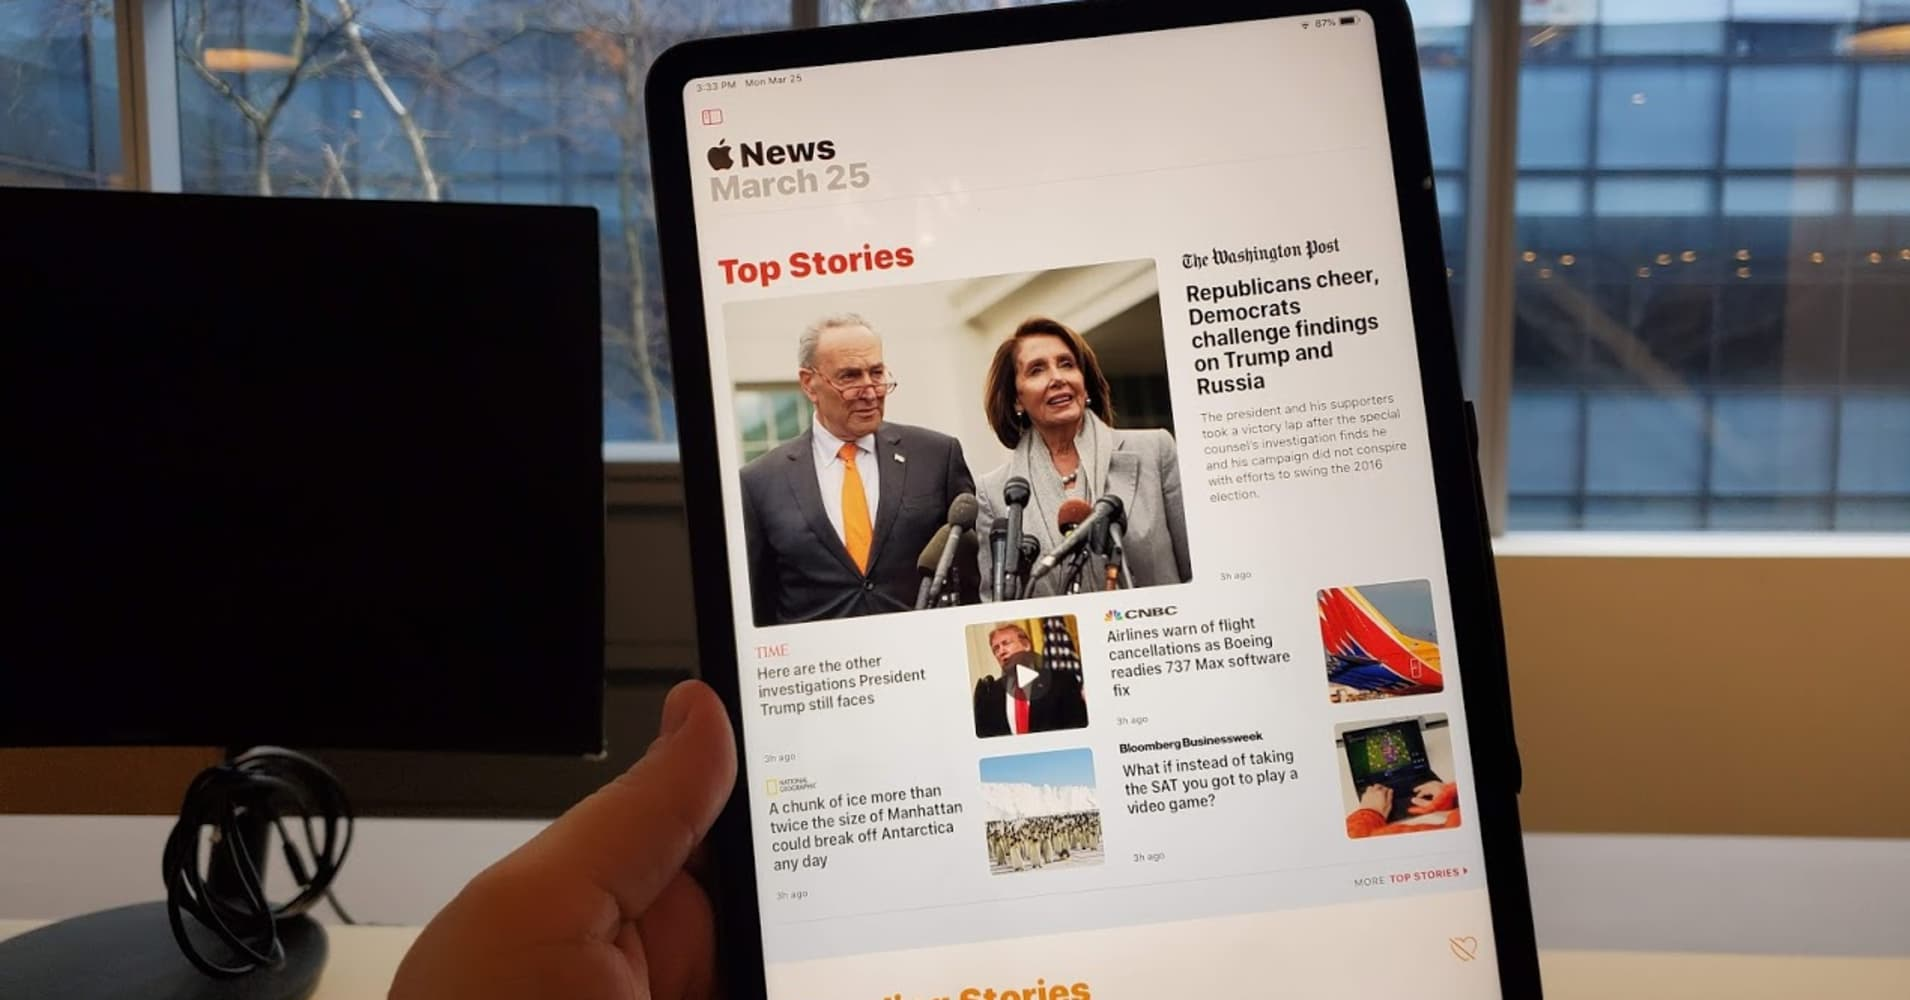 How to cancel your free trial of Apple News+ before it charges you $9.99